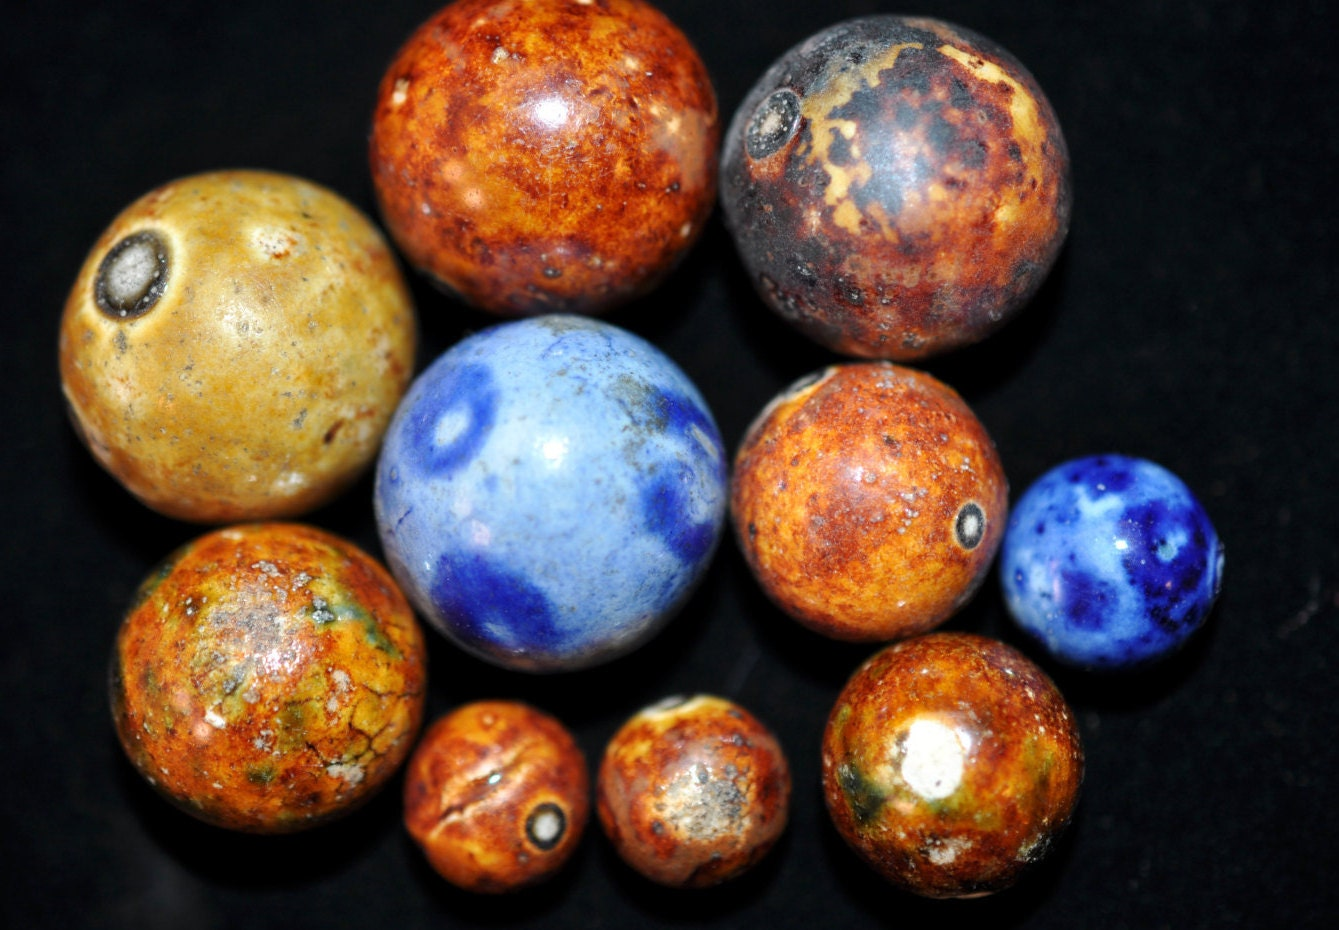 10 Antique Bennington Marbles Vintage Decor Collectible